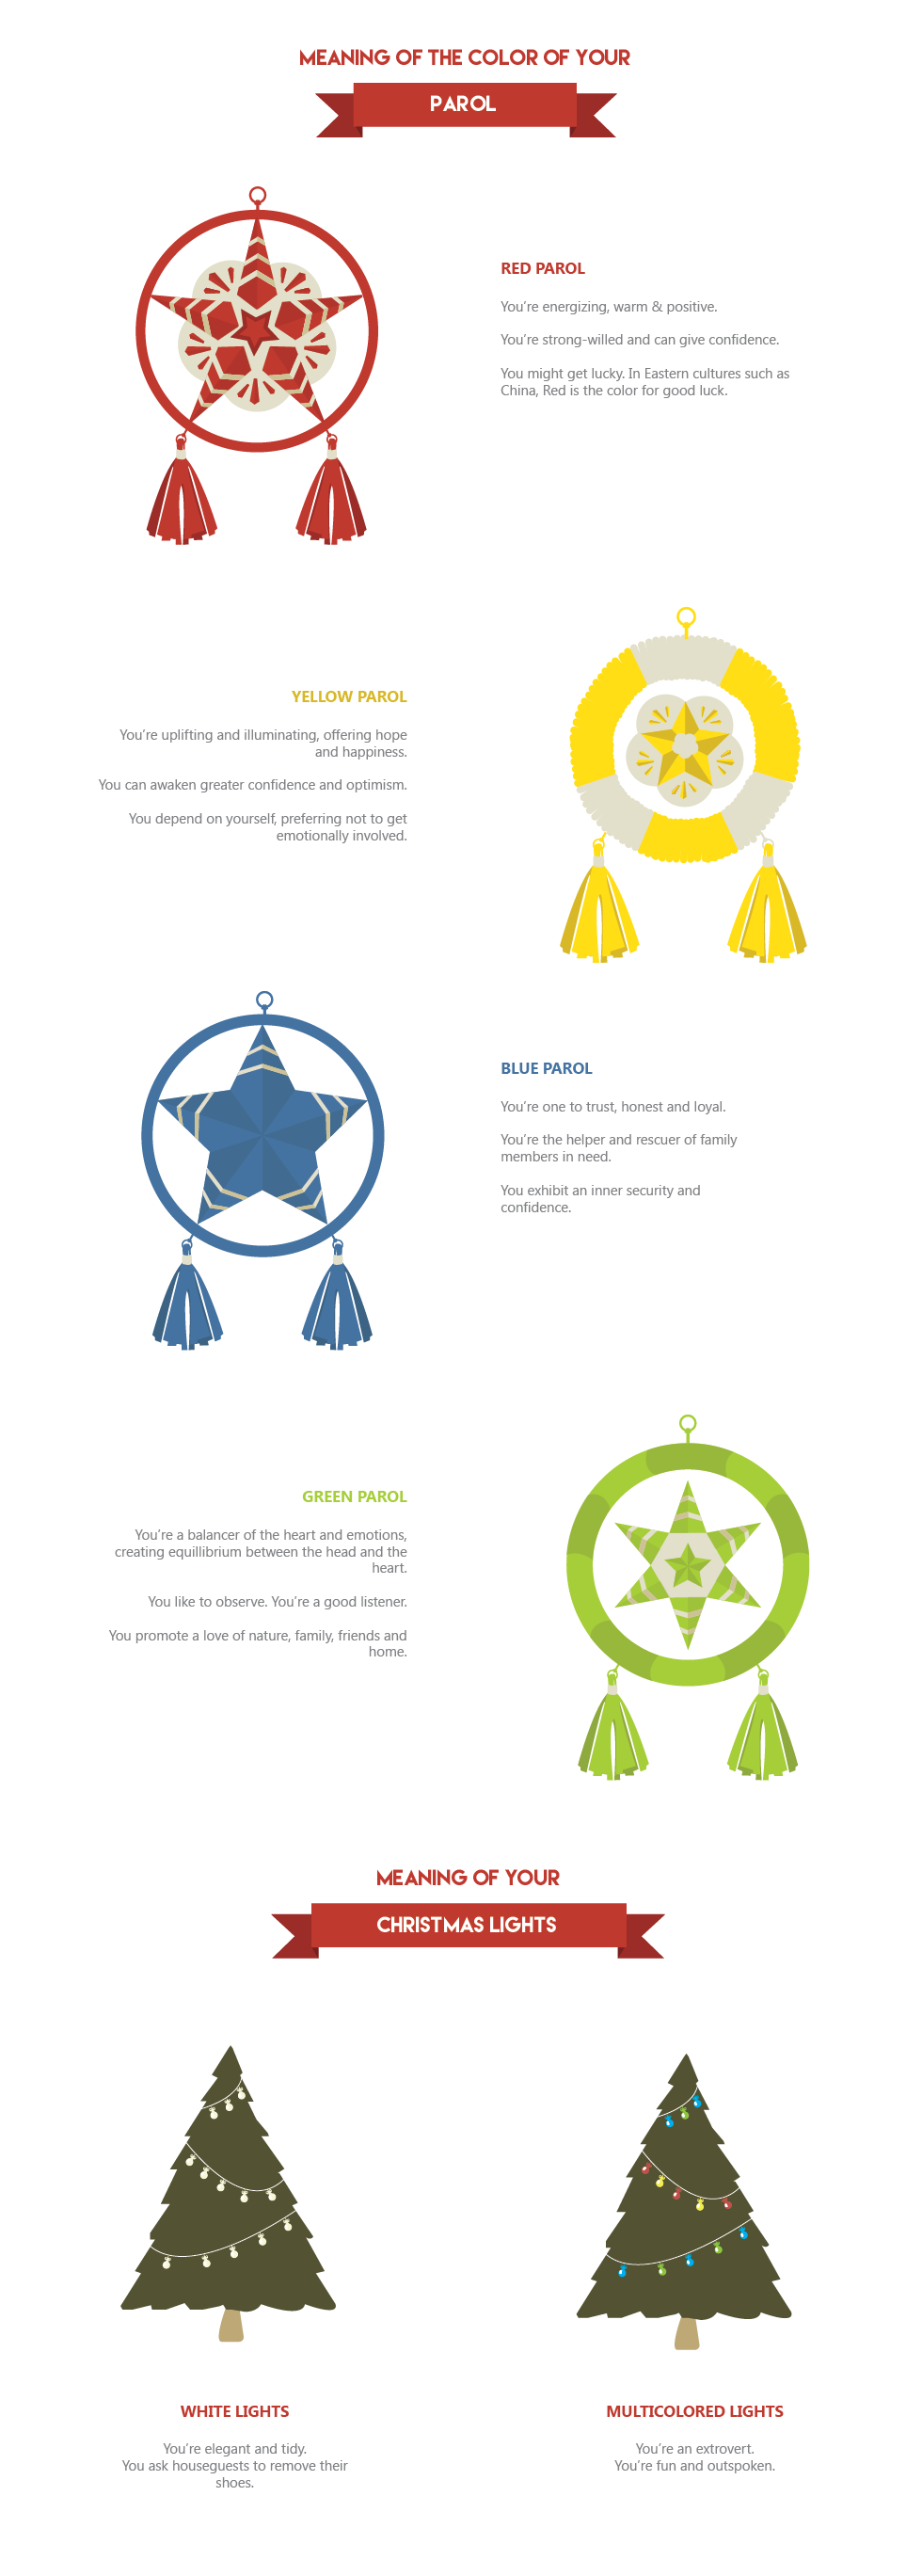 parol christmas light color meaning